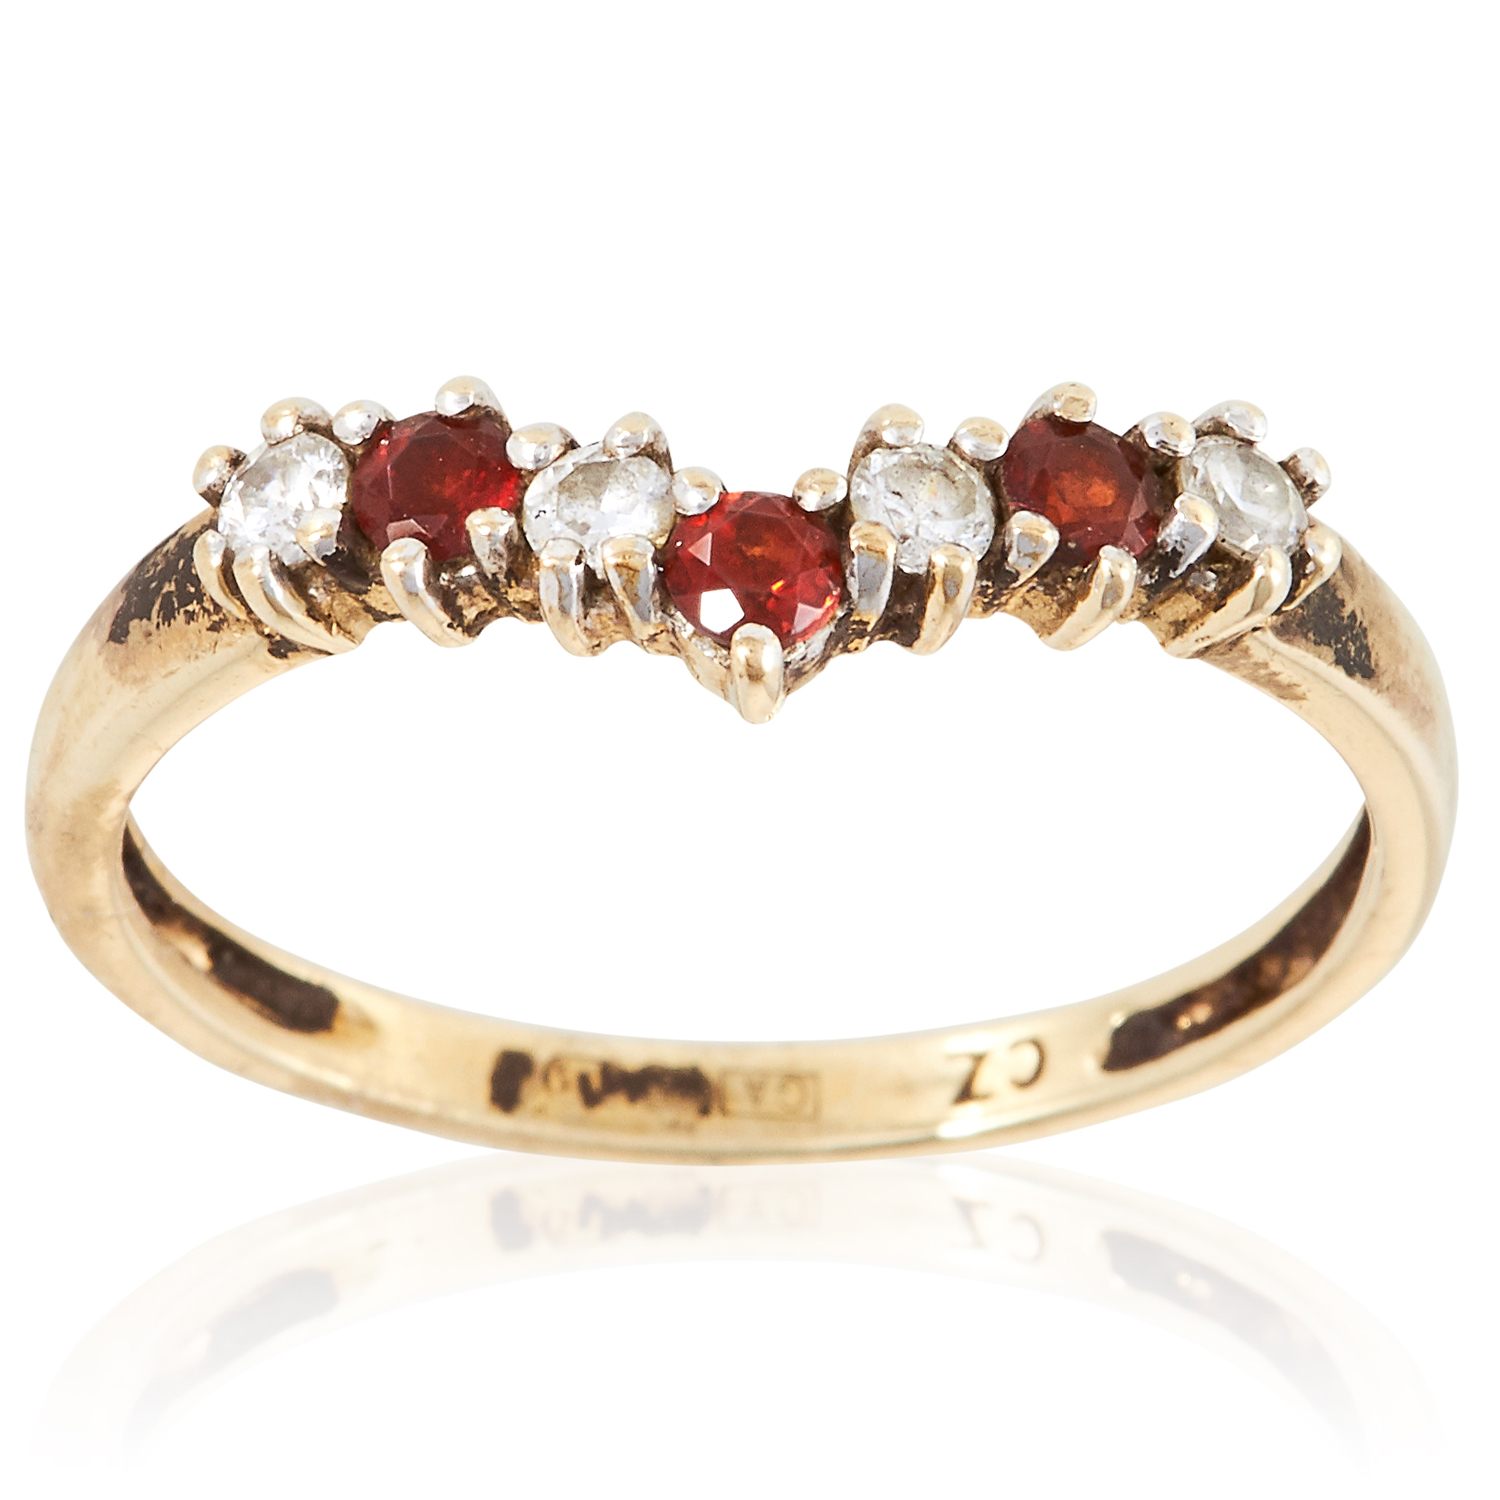 A GEMSET RING in yellow gold, set with alternating round cut red and white gemstones, unmarked, size